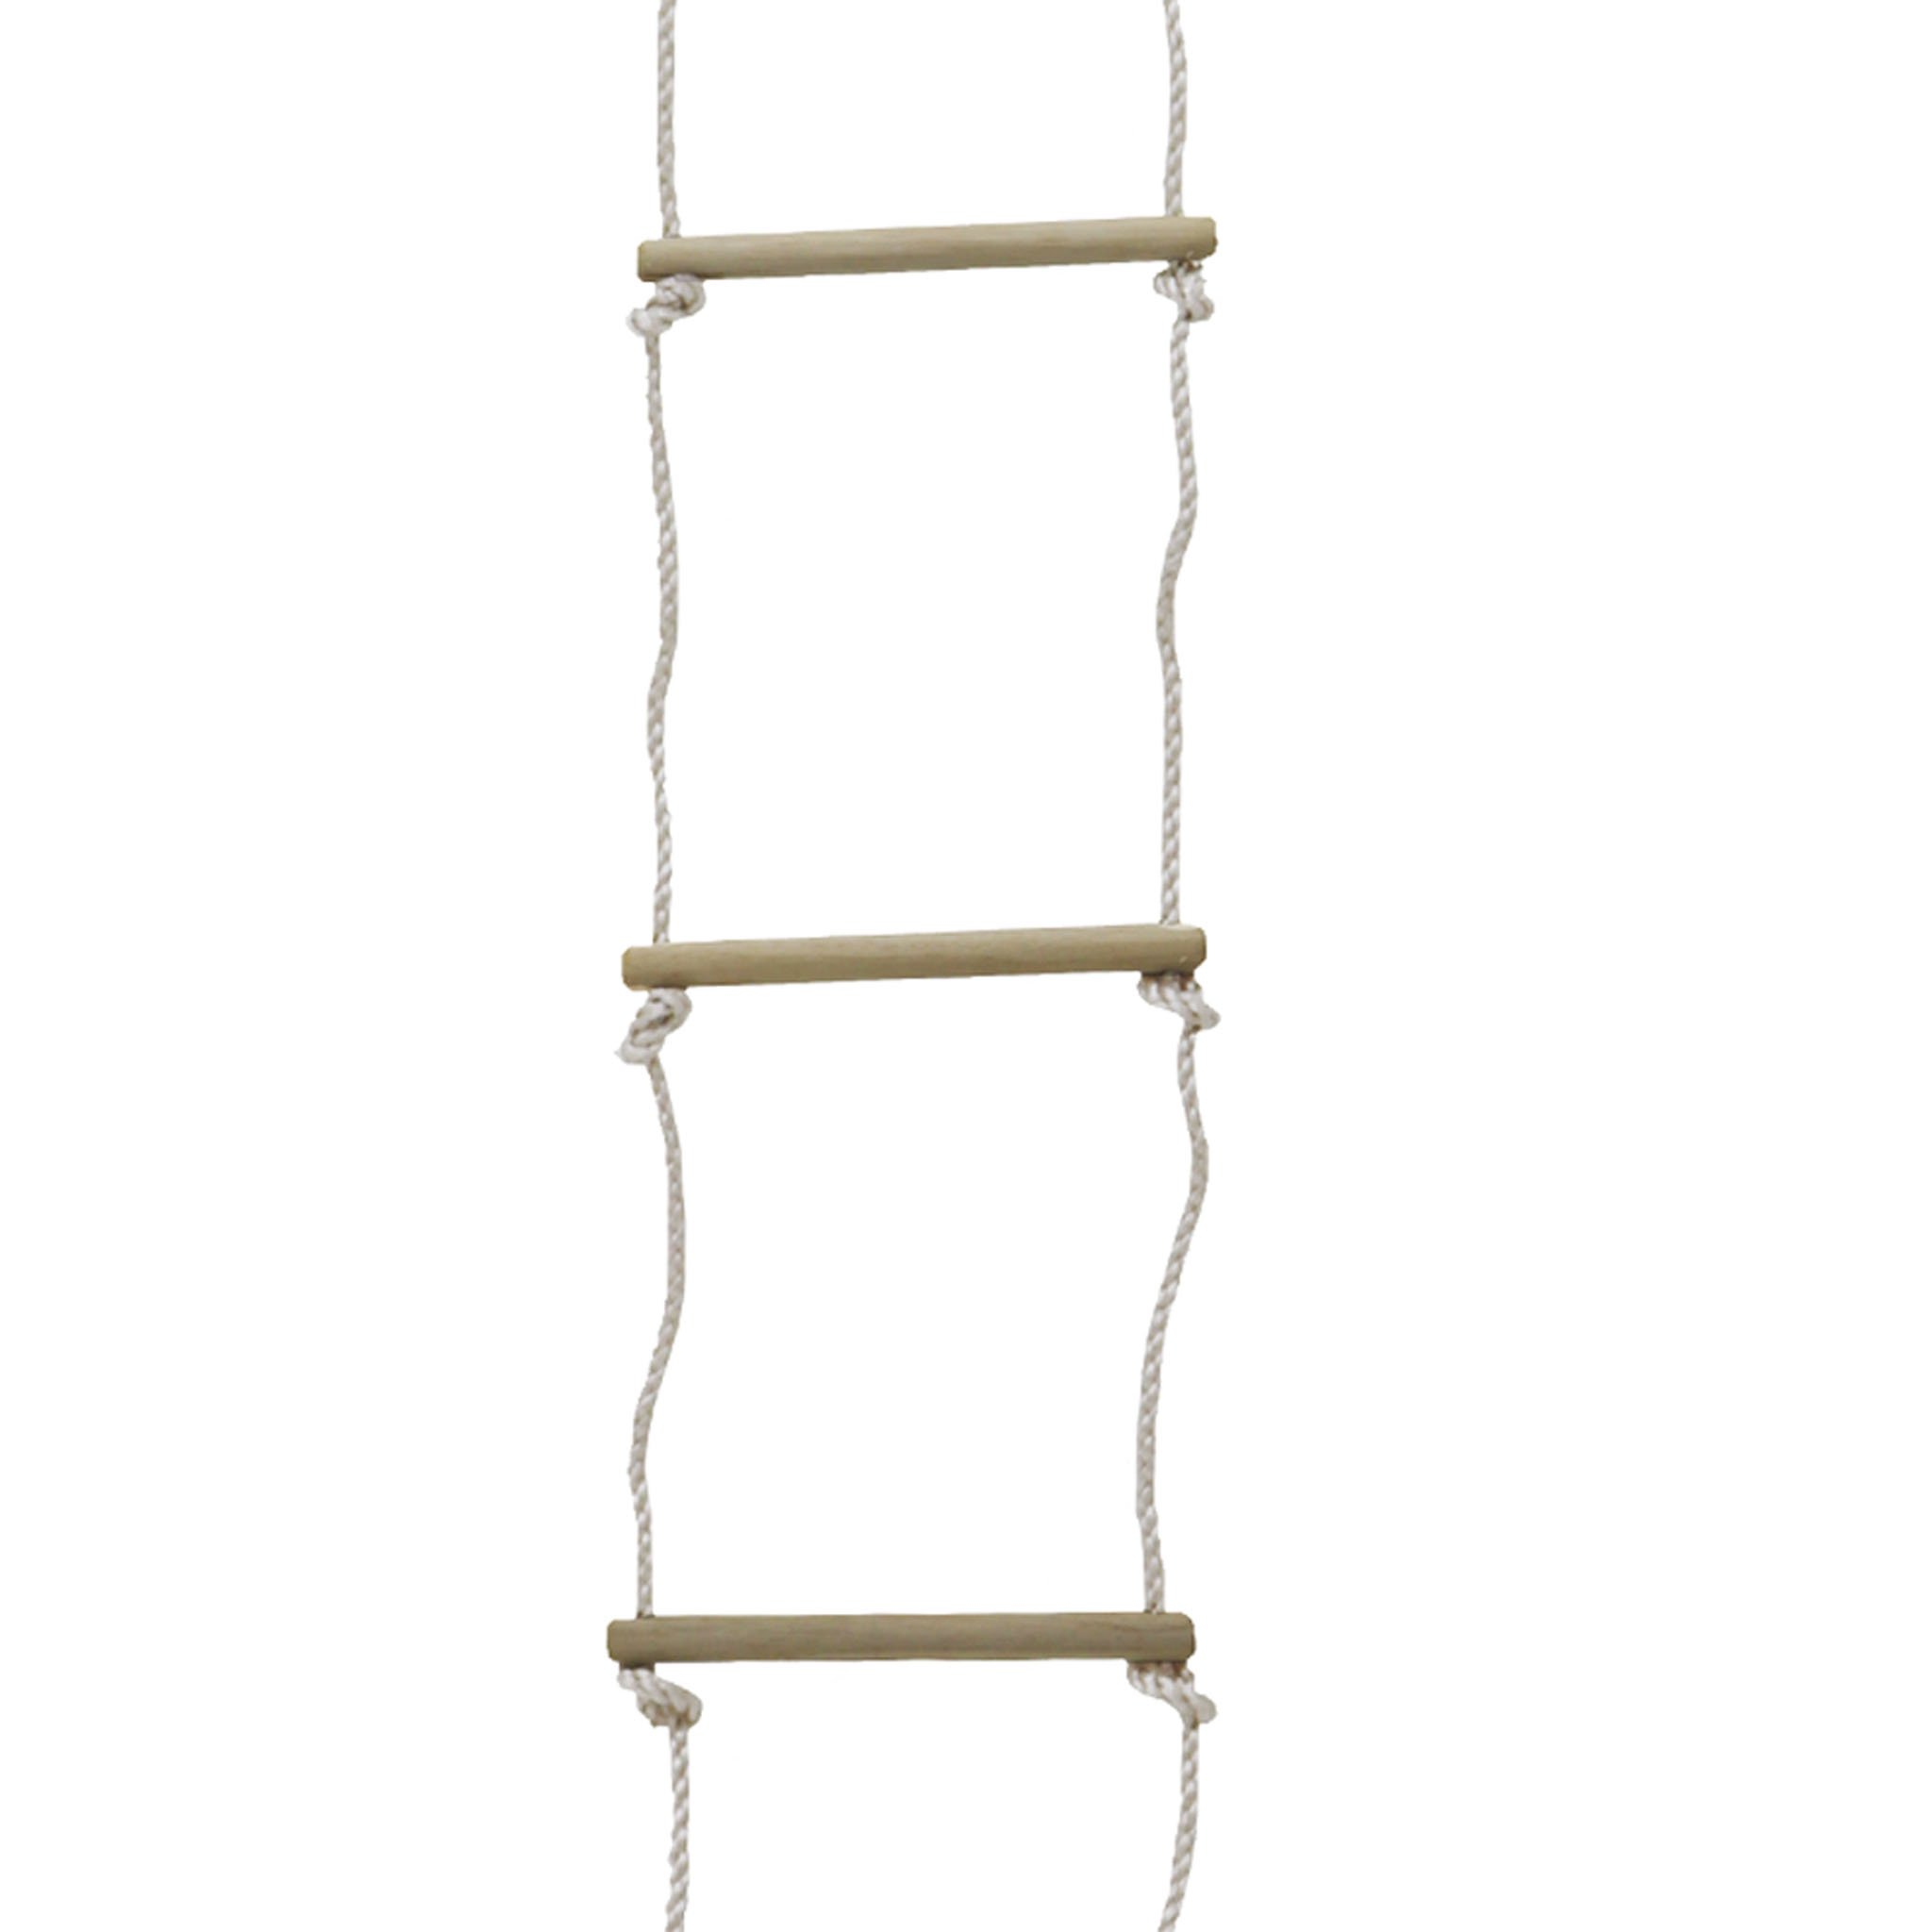 Childrens Outdoor Garden Play Rope Ladder 6 Rung Climbing Toy